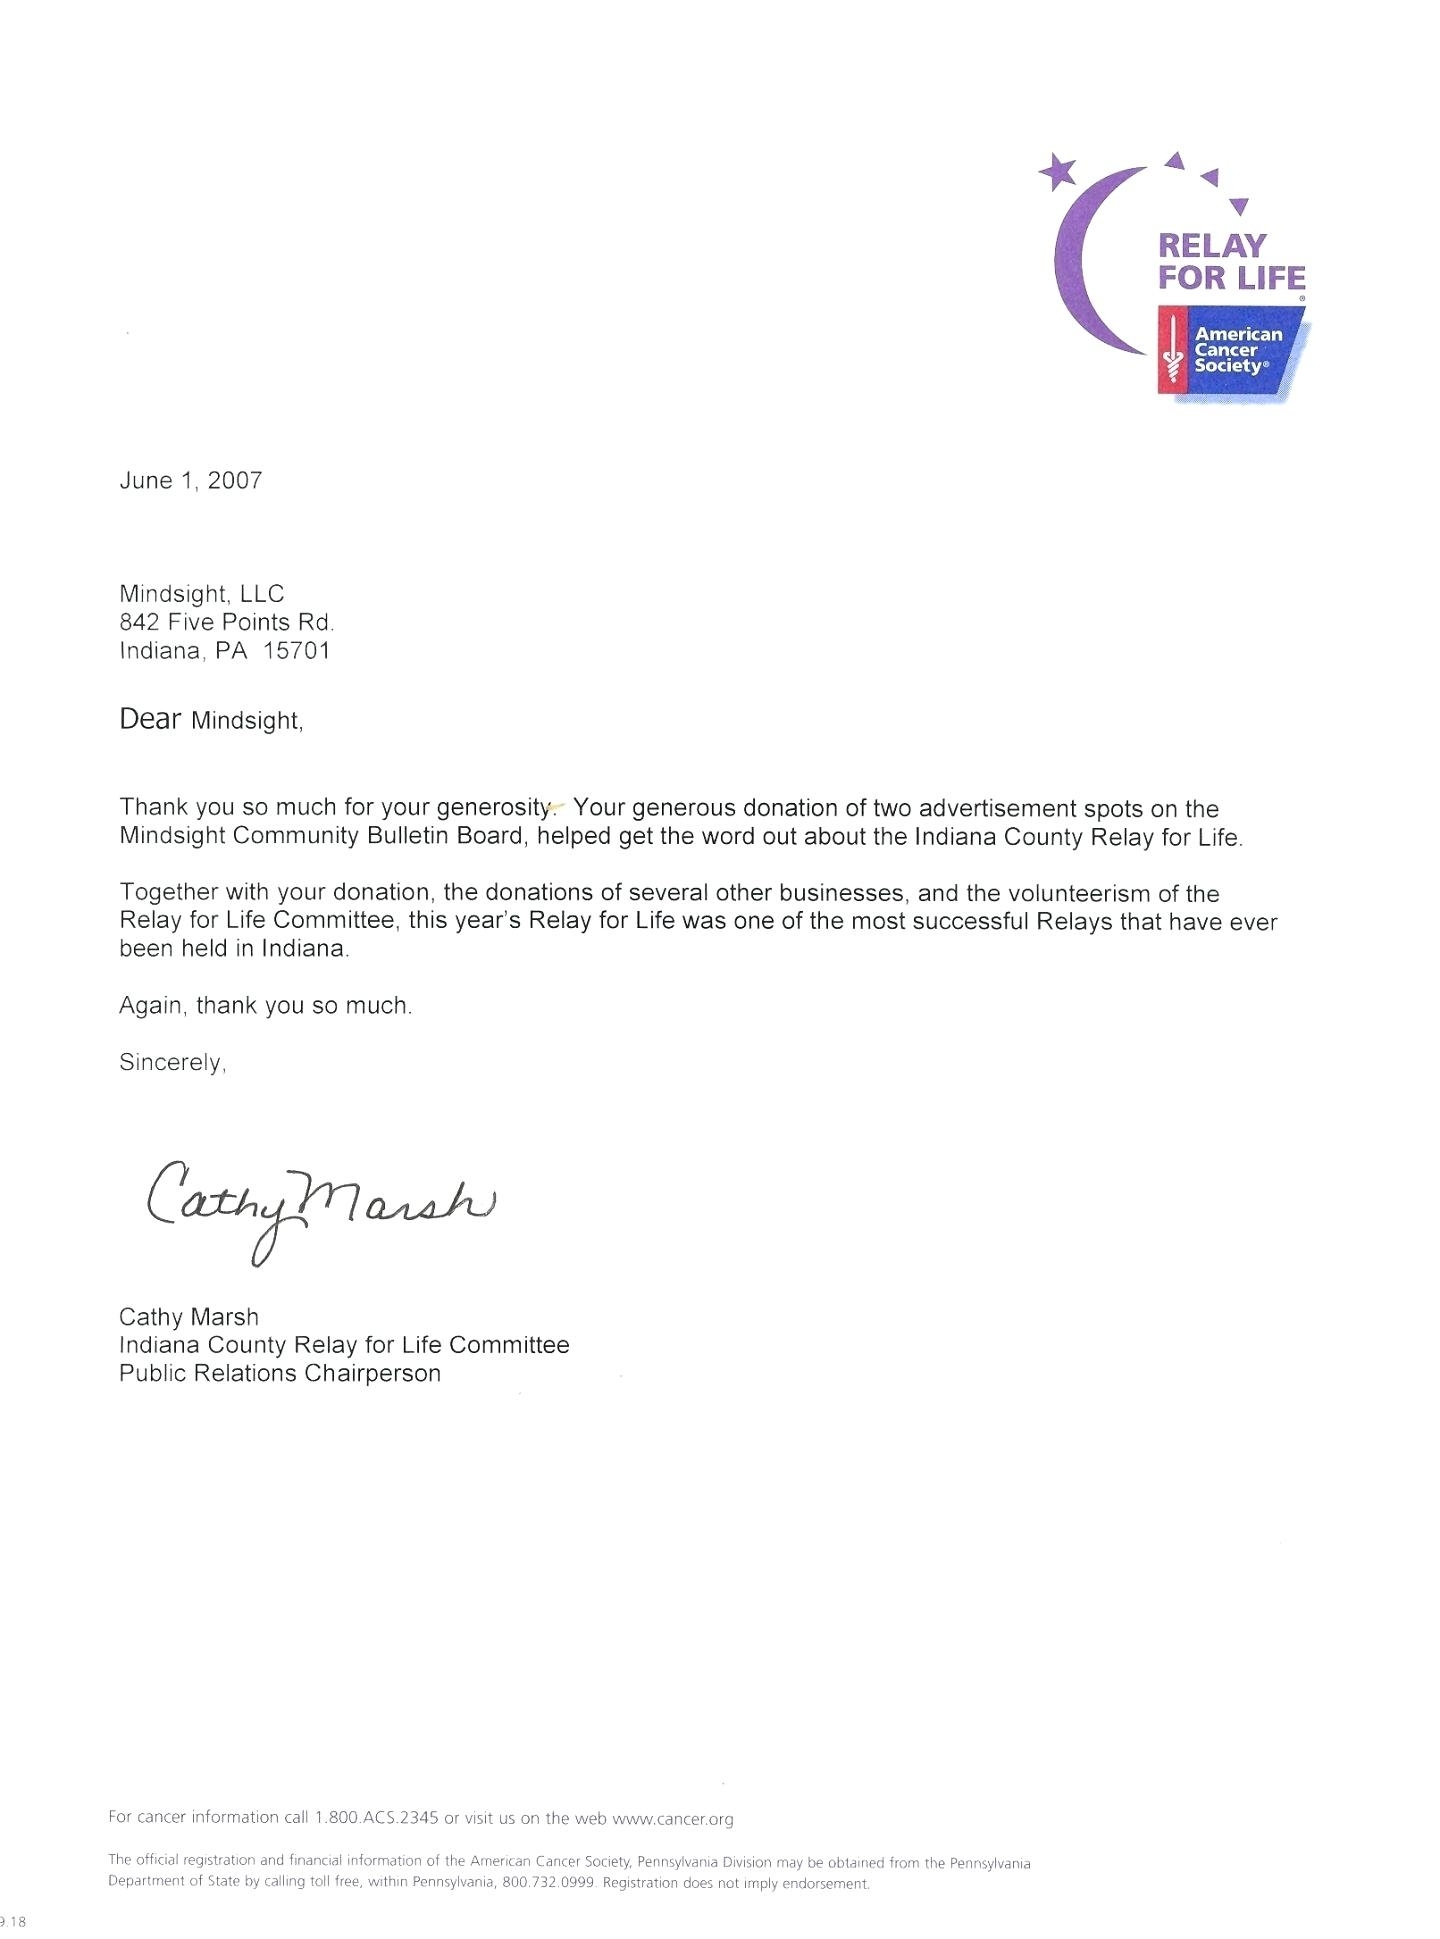 relay for life donation letter template example-Relay For Life Donation Letter Seven 13-p